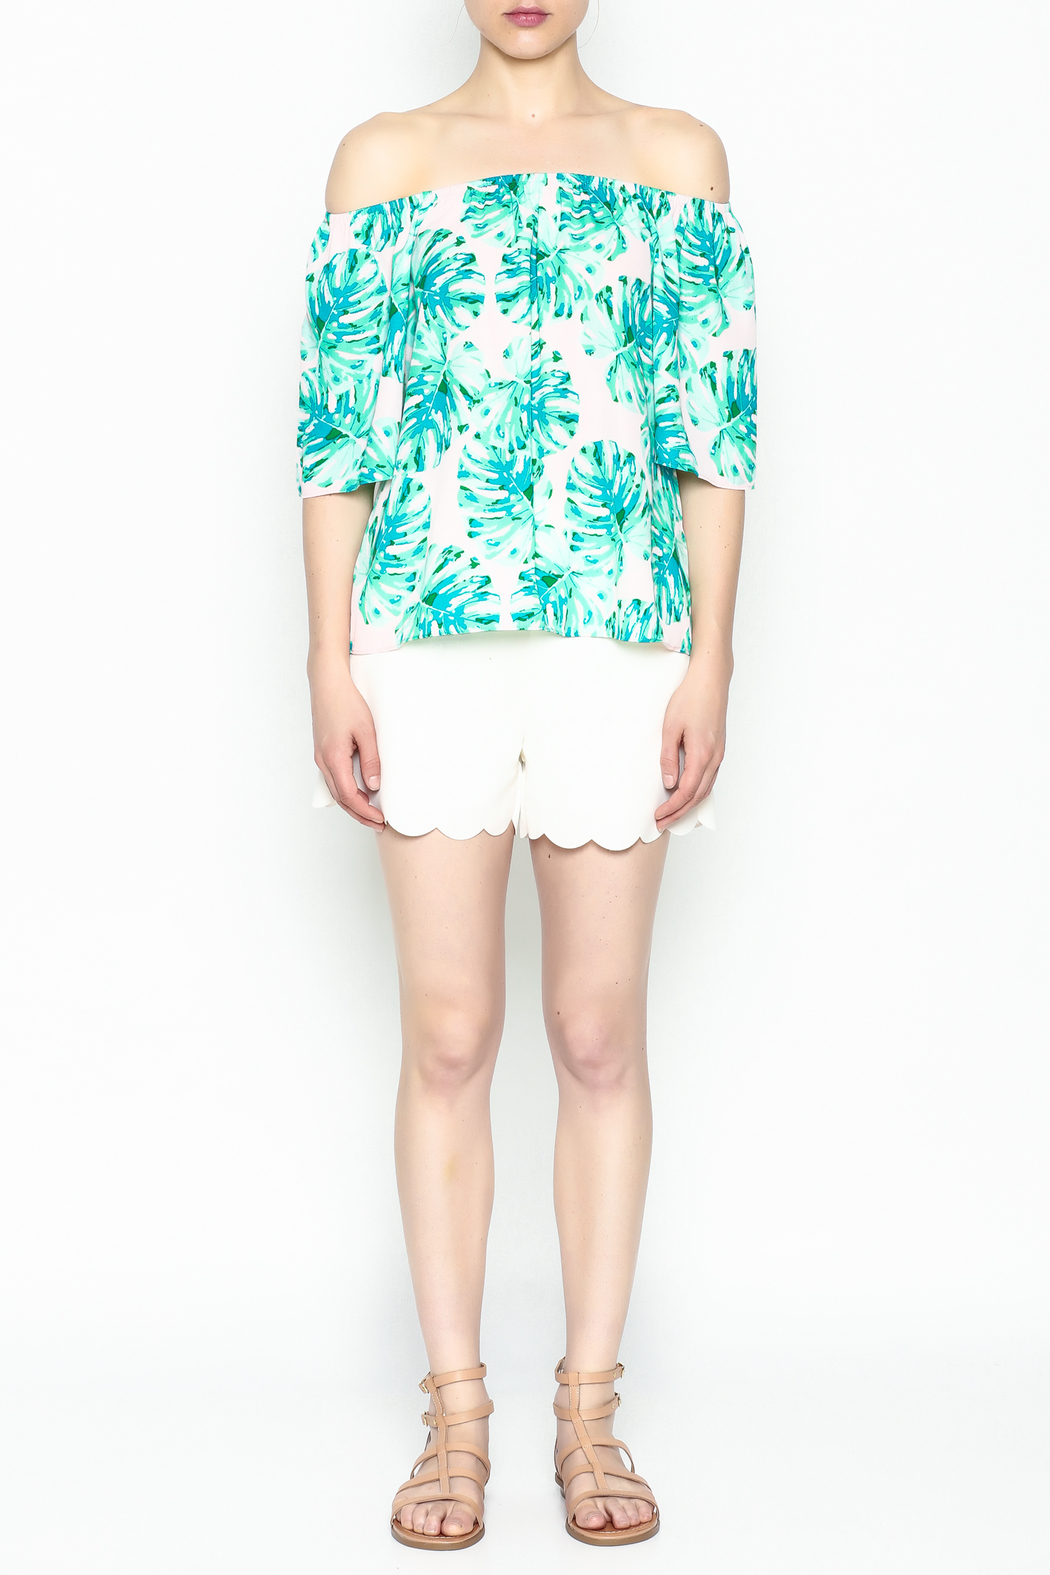 Buddy Love Tropical Cosmopolitan Top - Front Full Image